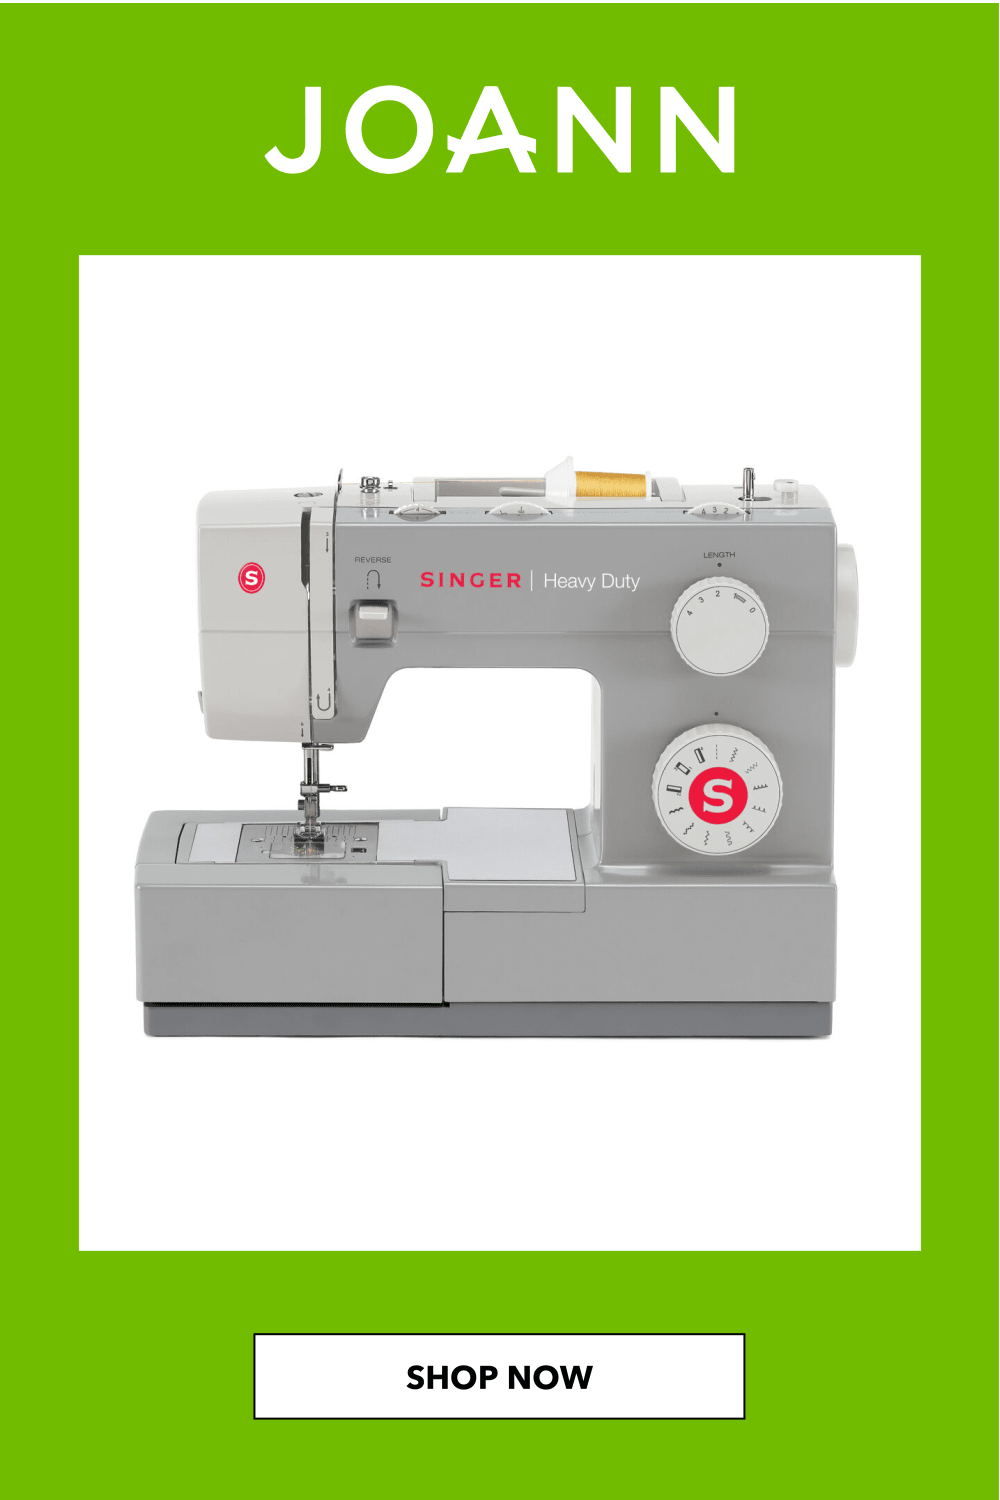 Joann Sewing Machines : joann, sewing, machines, Singer, Heavy, Sewing, Machine, JOANN, Machine,, Sewing,, Basics